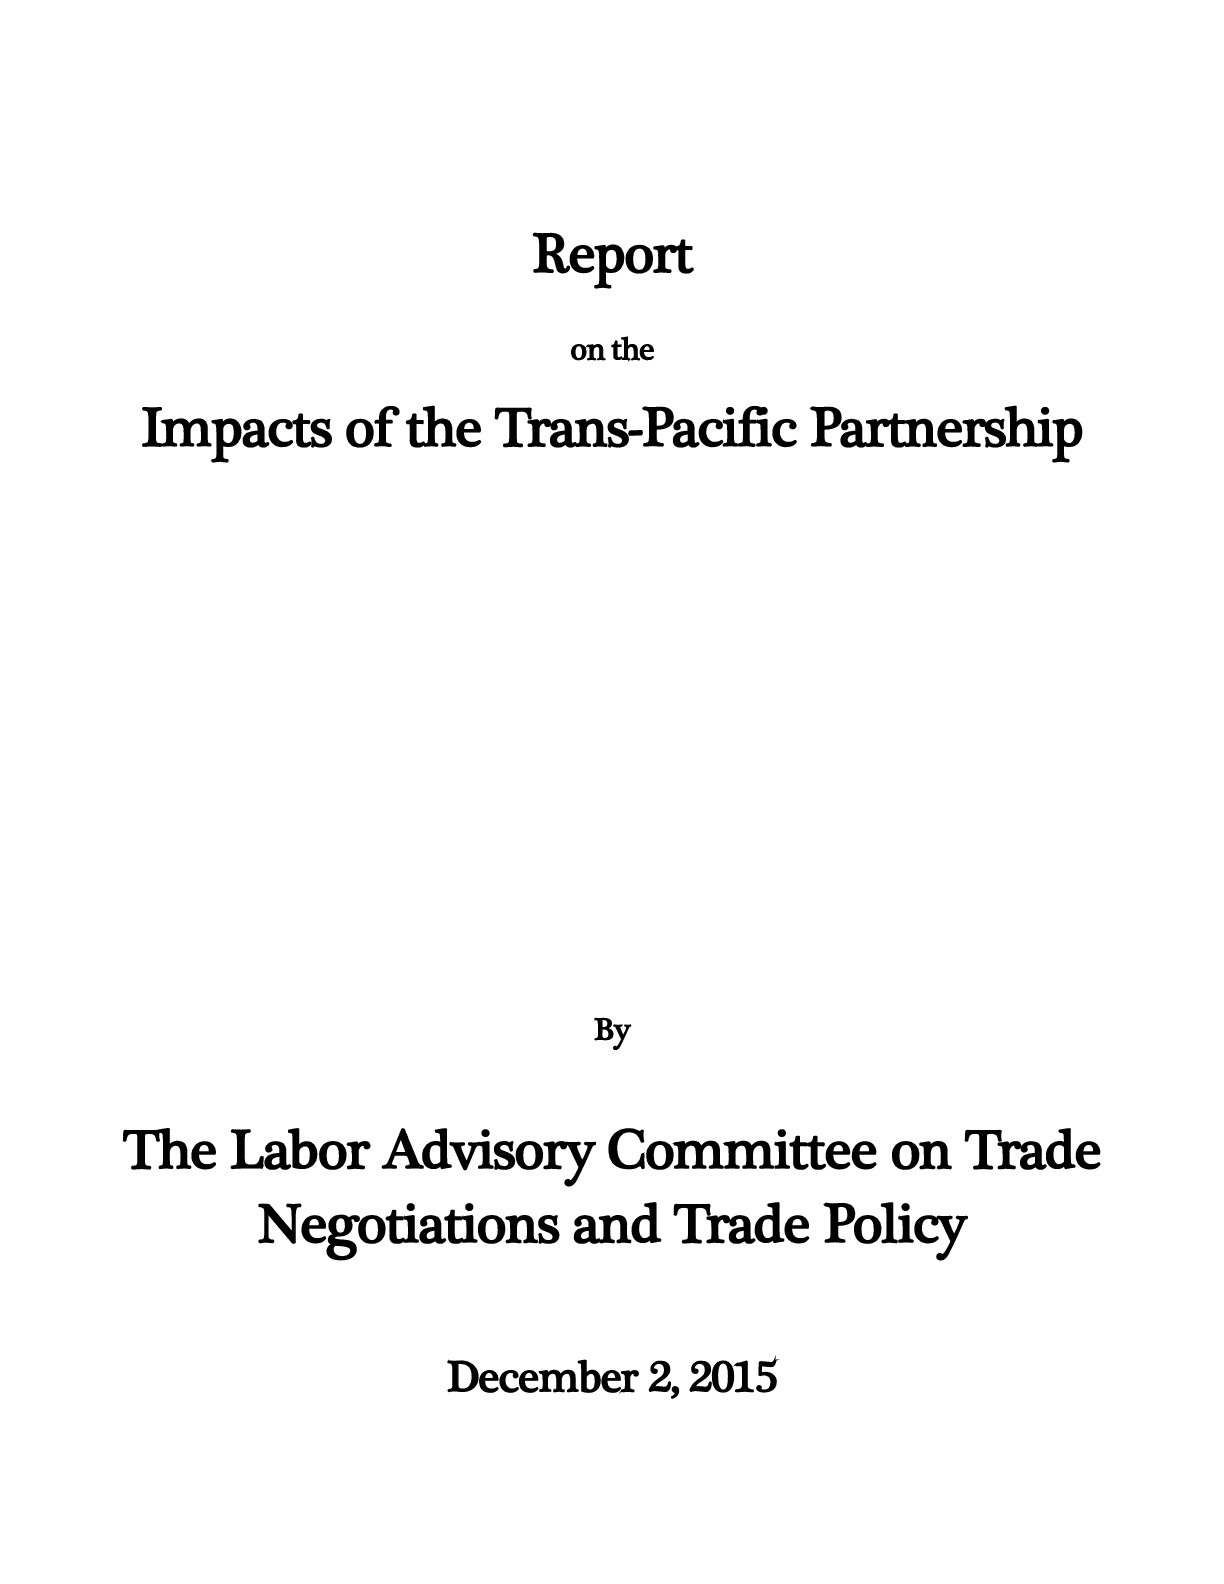 Report on the Impacts of the TPP  c69844439